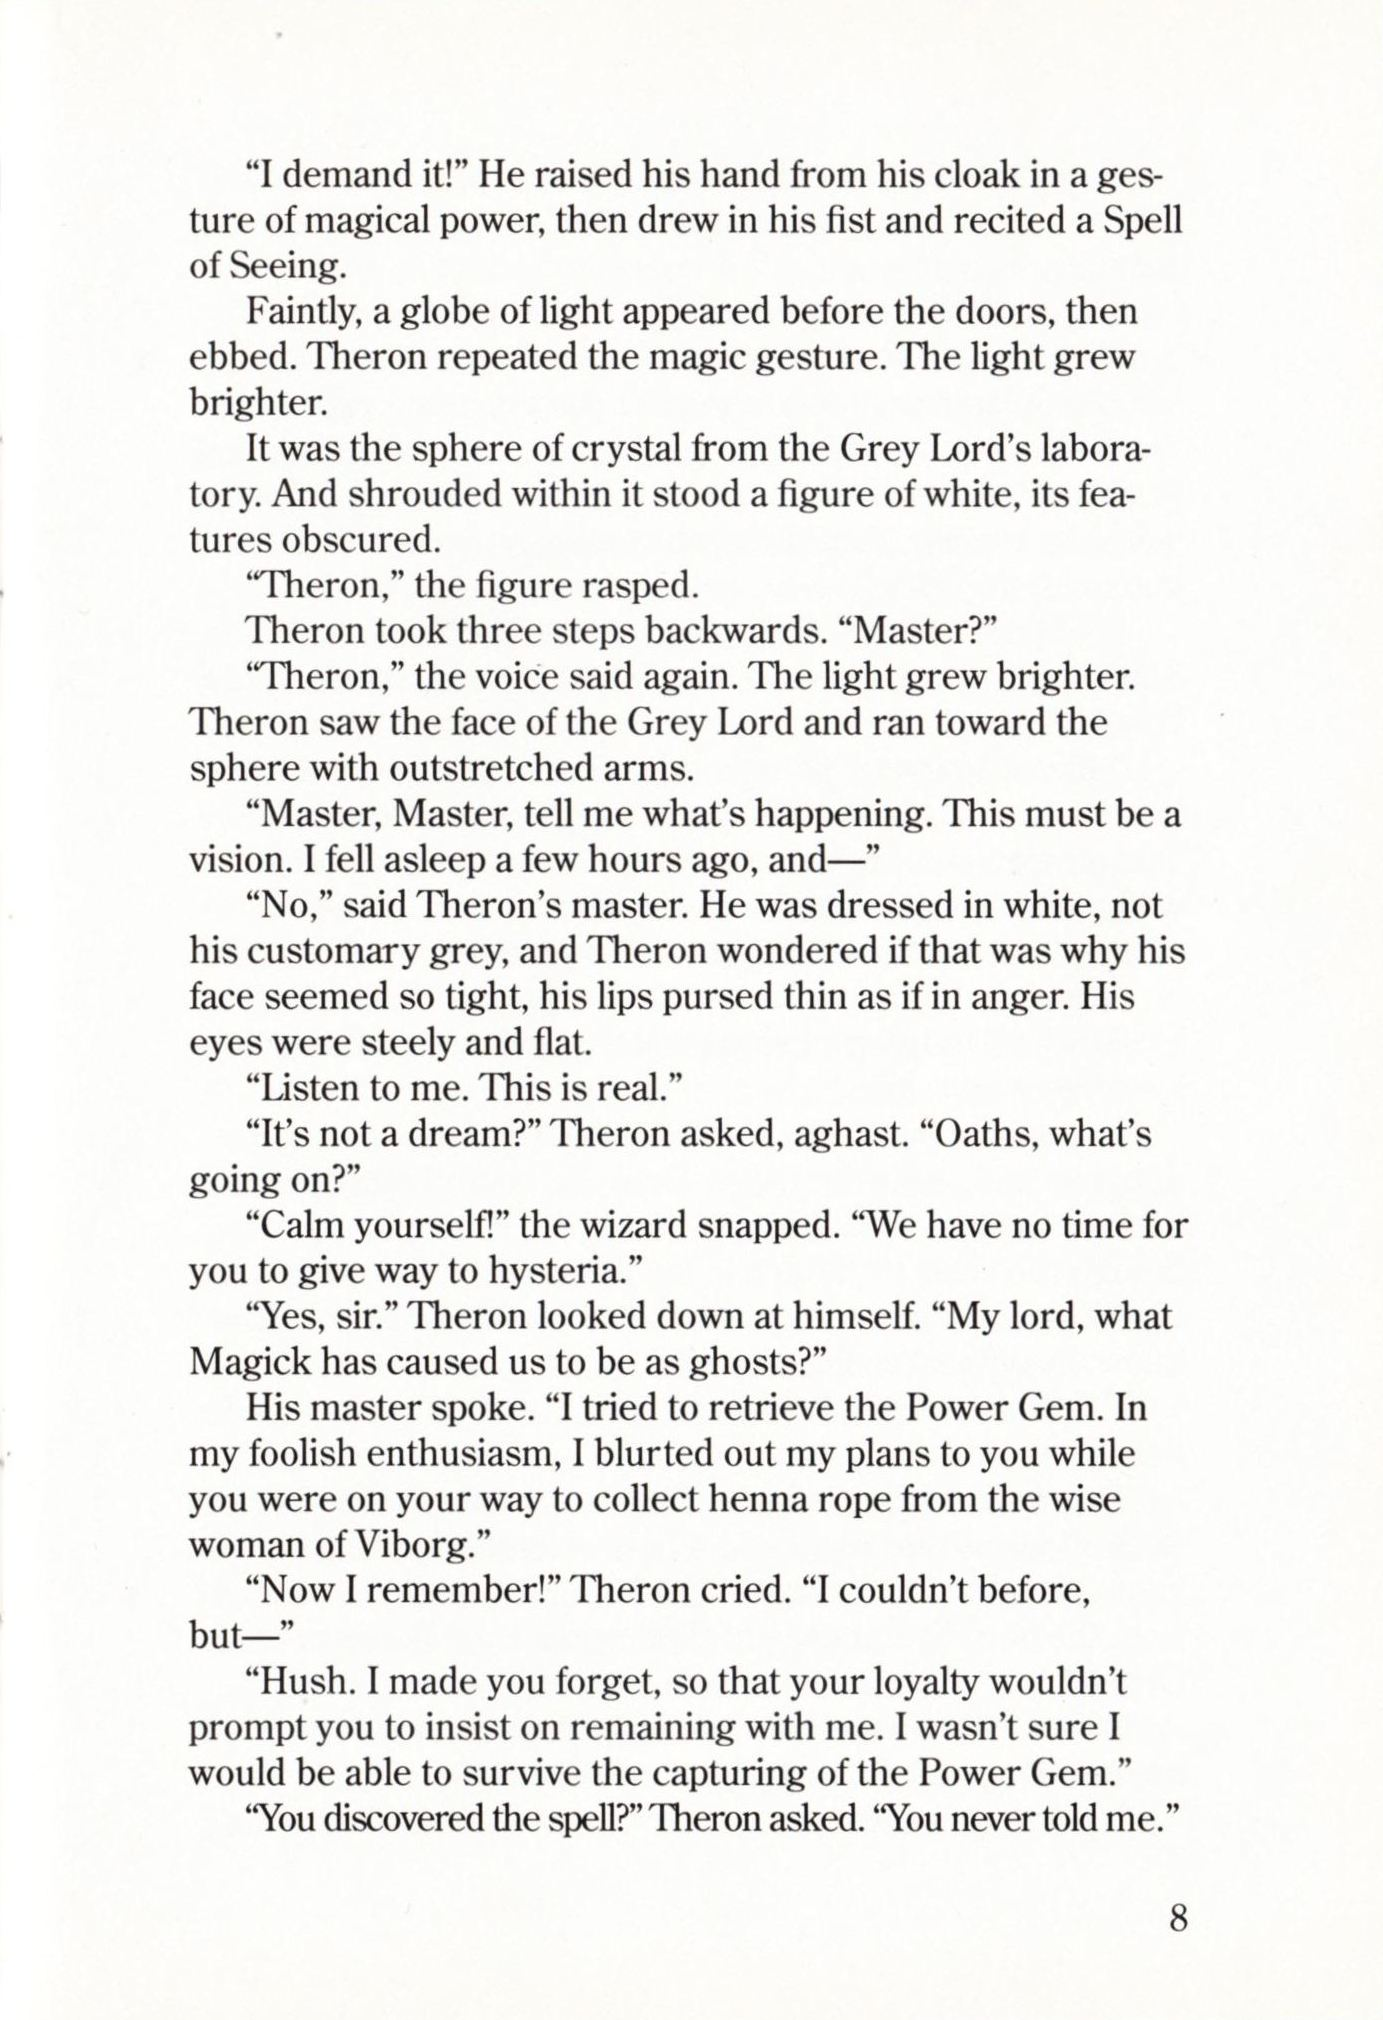 Game - Dungeon Master - US - Super NES - Manual - Page 011 - Scan